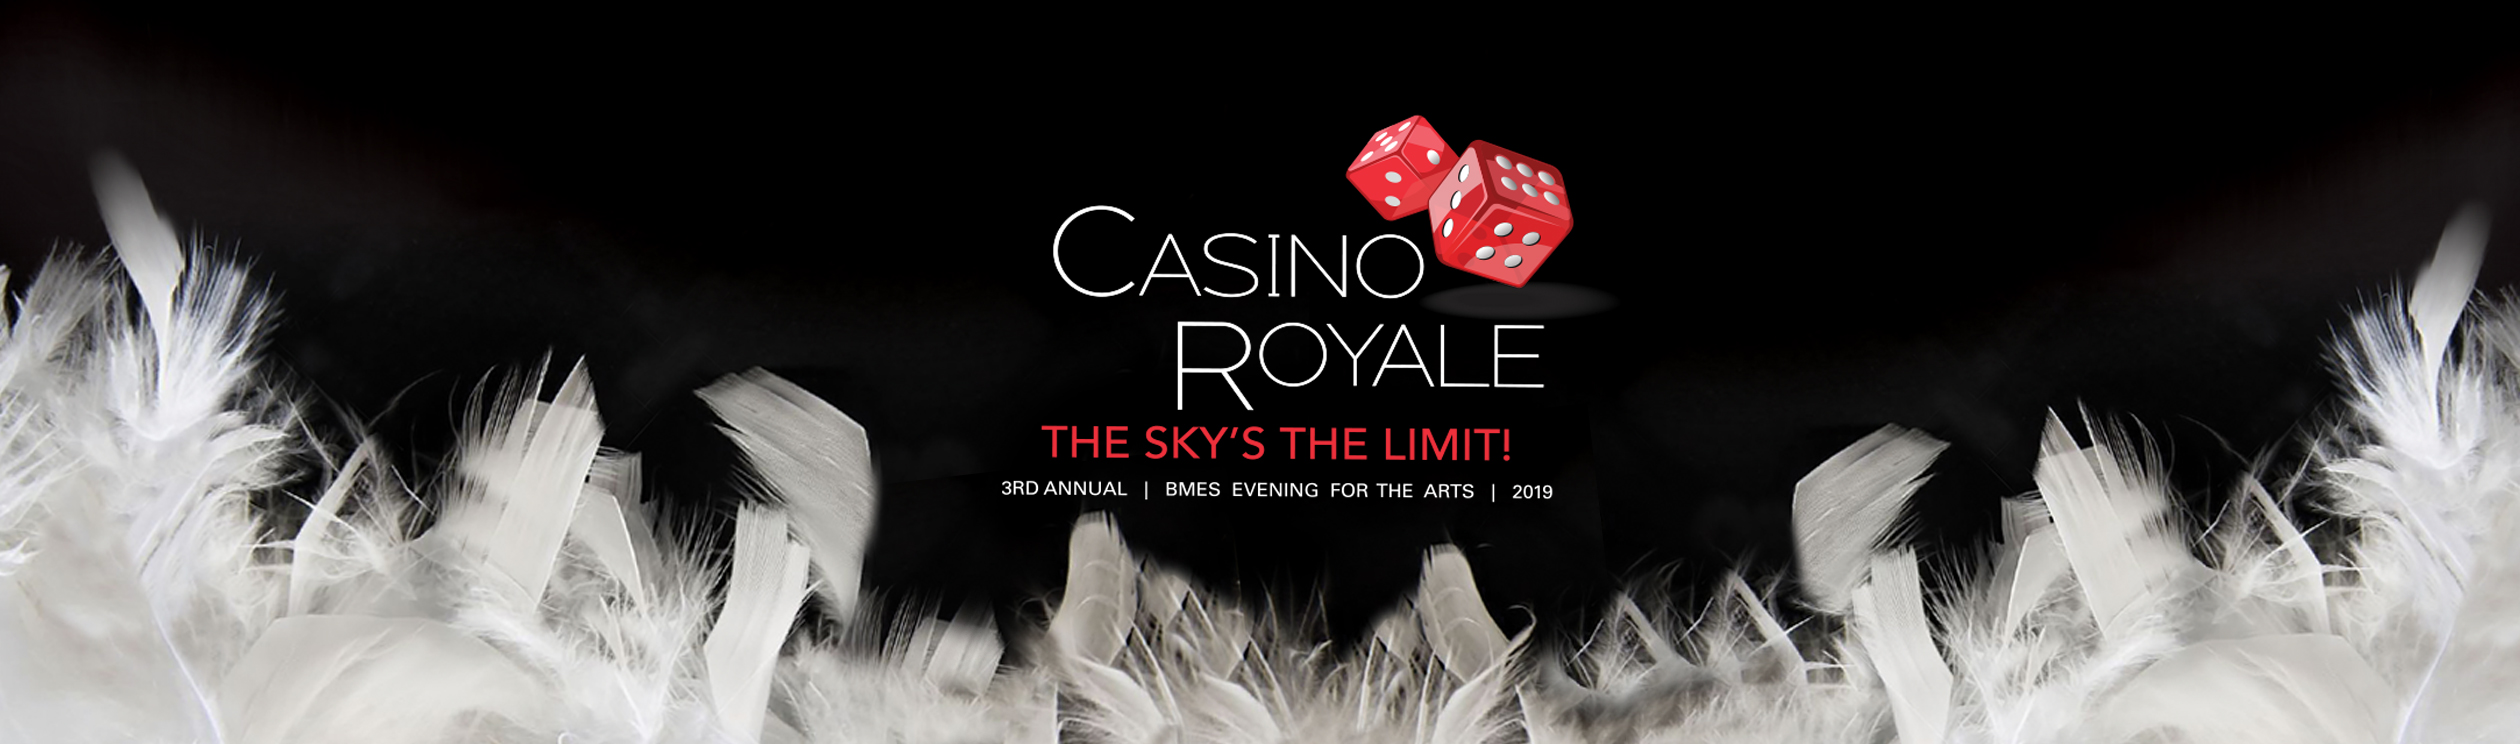 Casino Royale - The Sky's the Limit